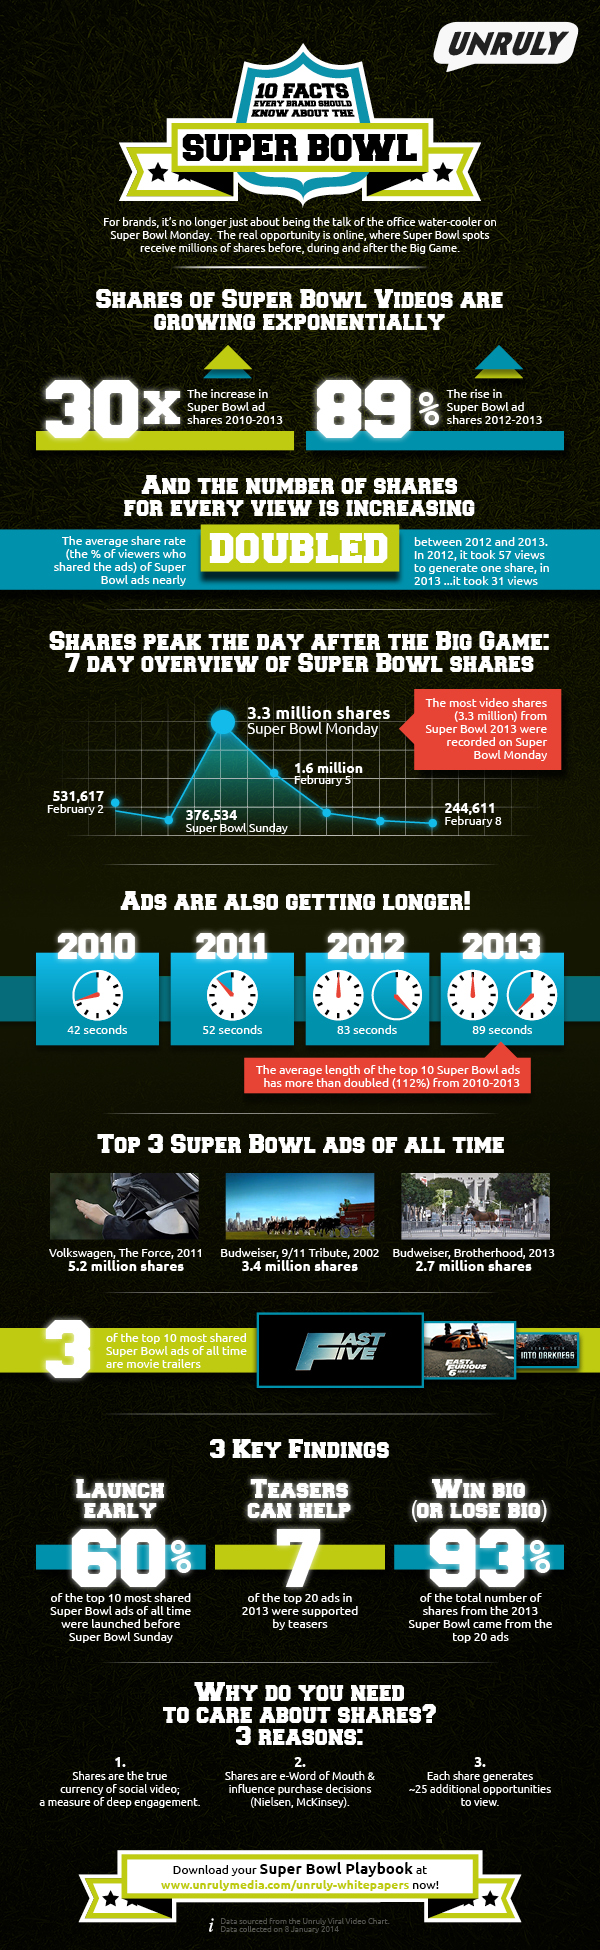 Unruly_Super_Bowl_2014_infographic